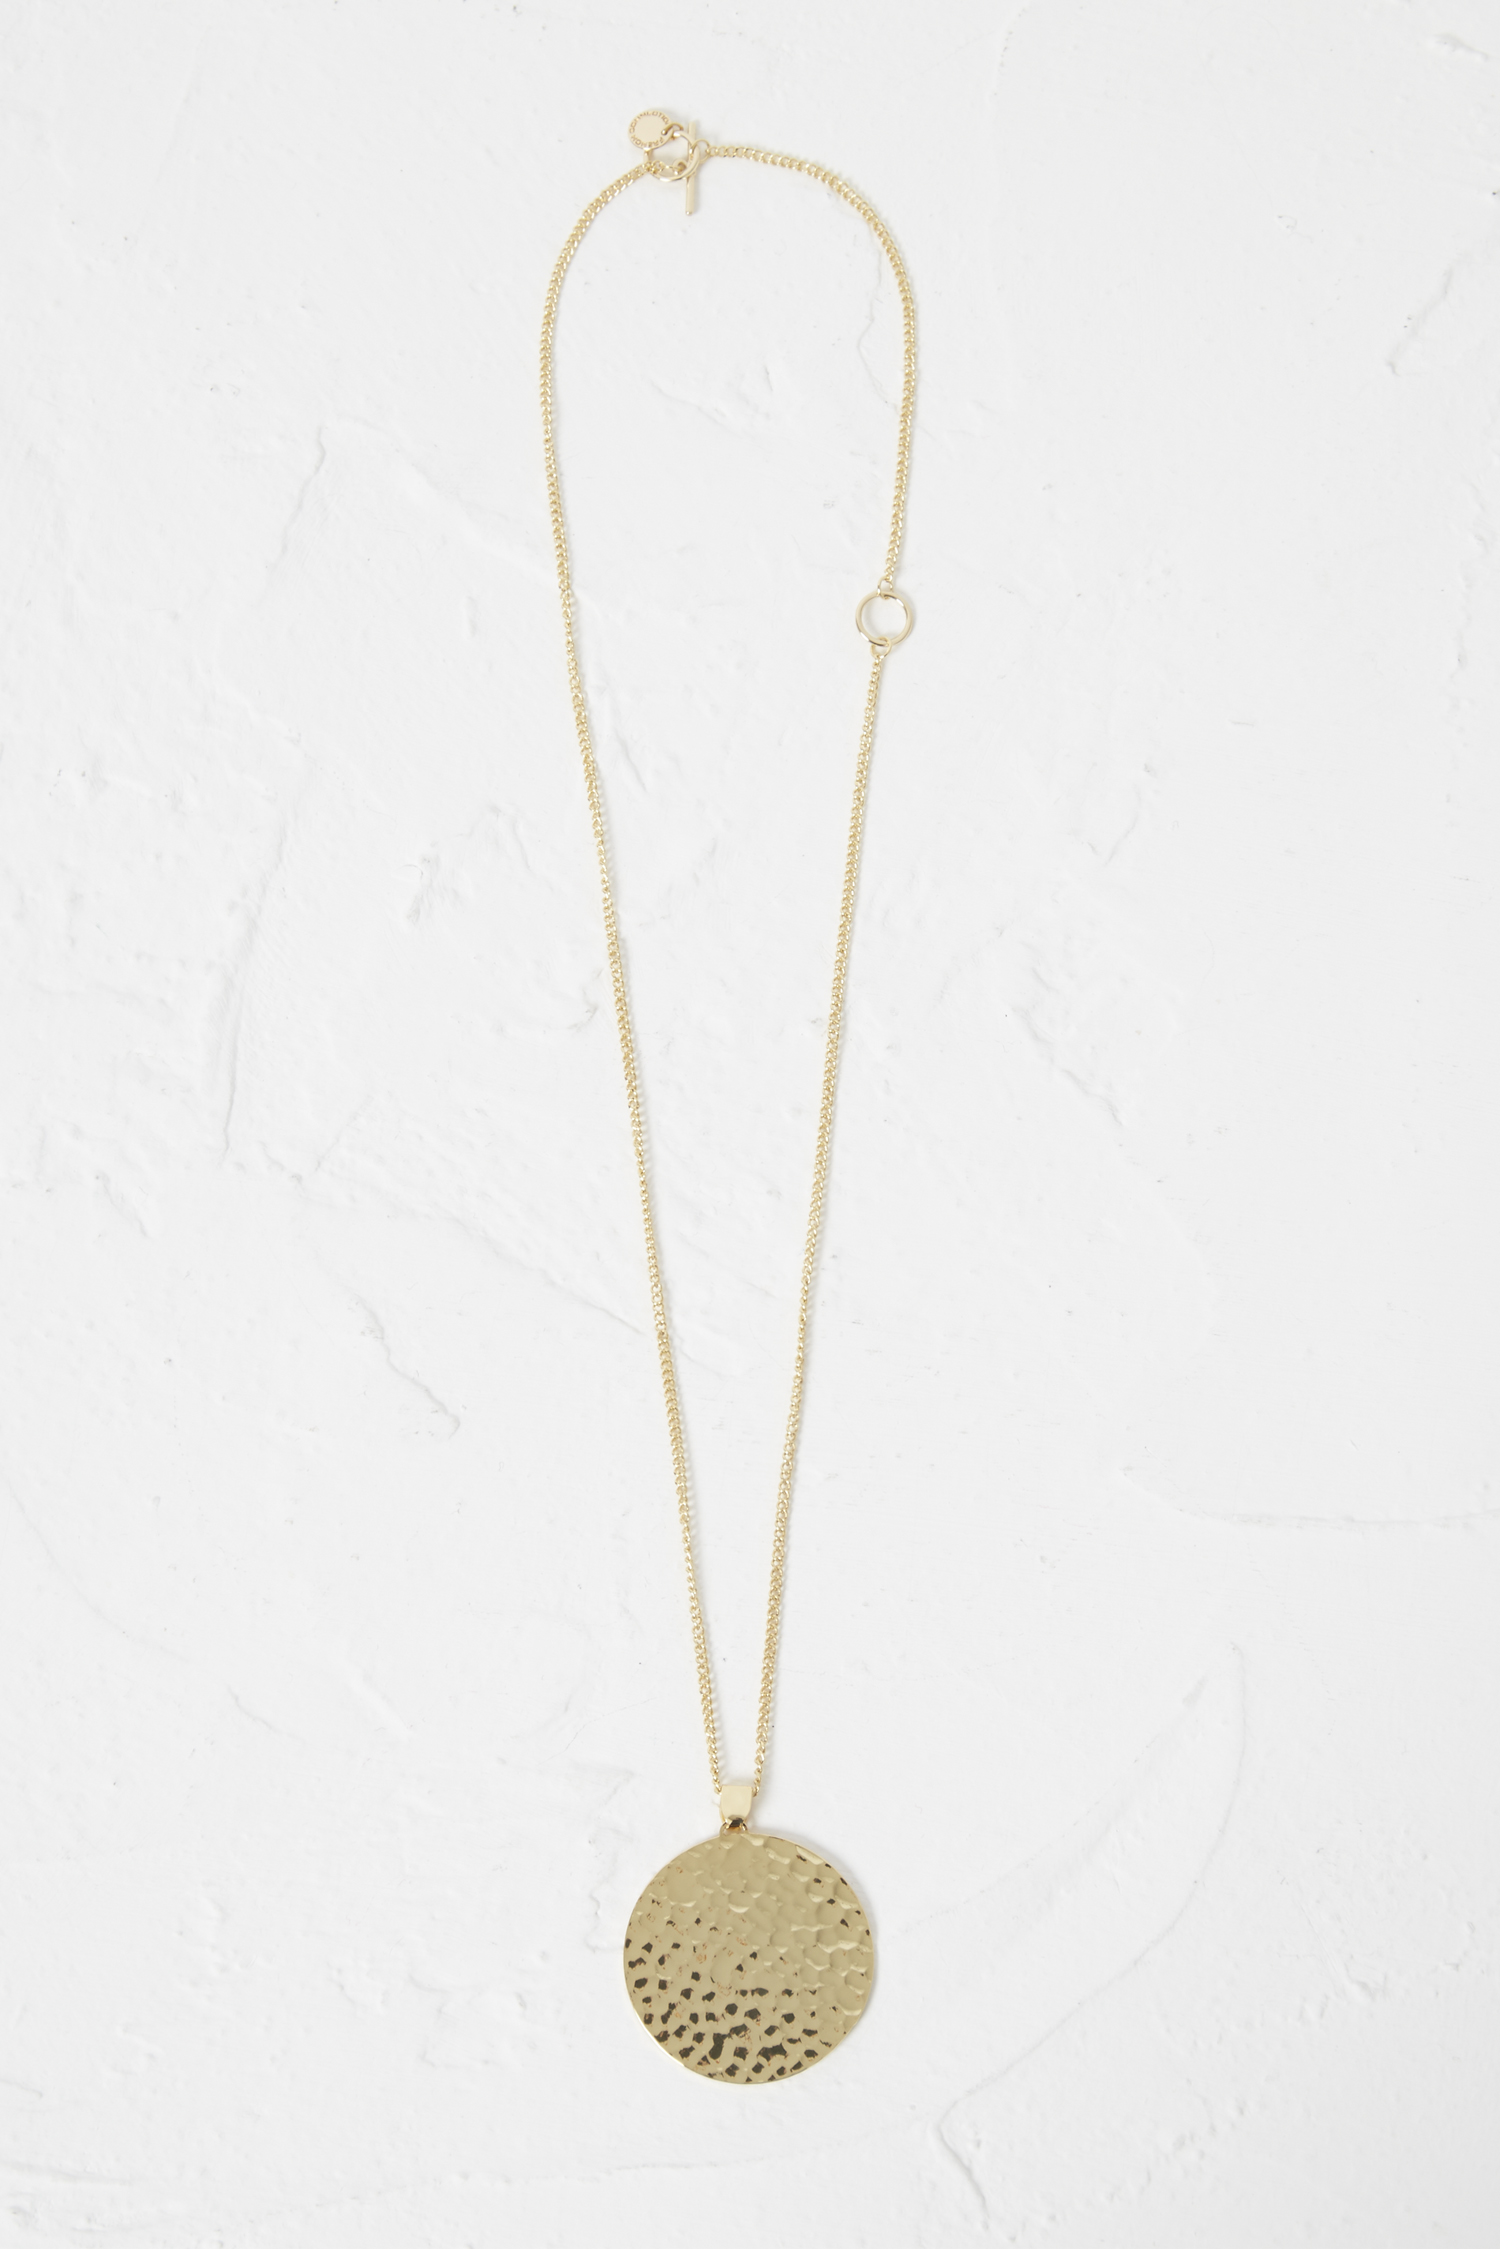 Hammered disc pendant necklace collections french connection usa aloadofball Choice Image